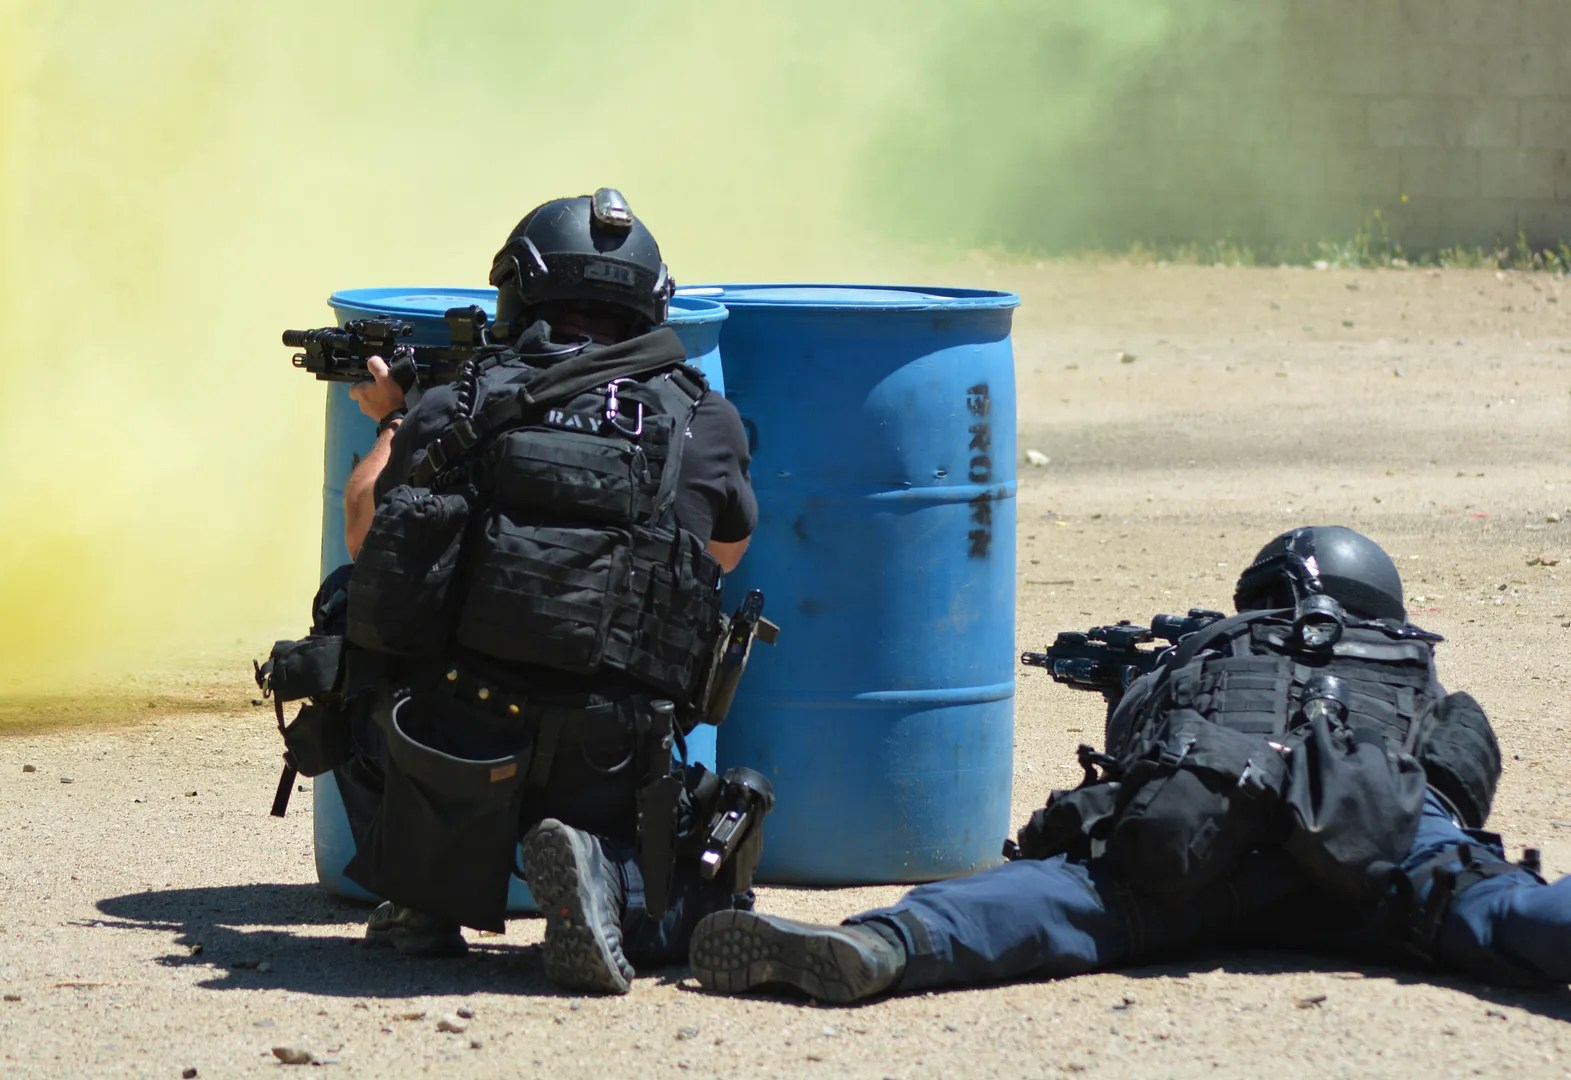 photo LAPD_SWAT_Exercise_10_zpsm7sstgqf.jpg